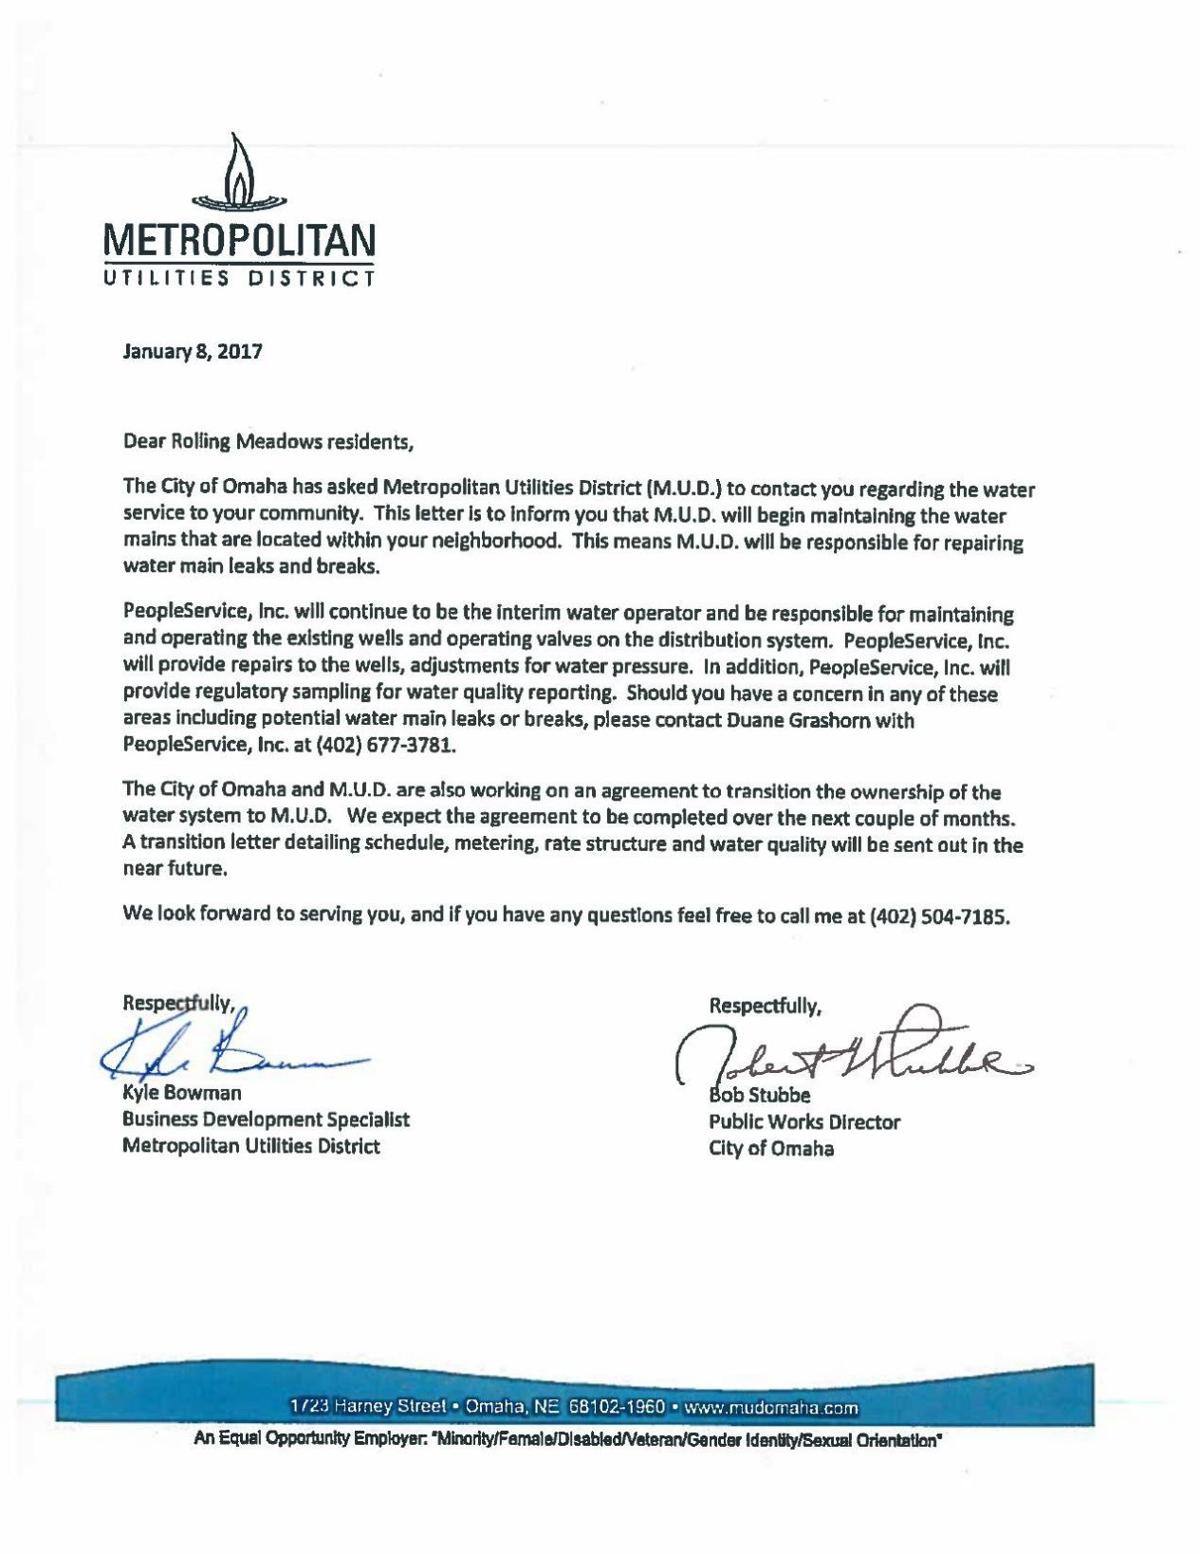 Mud Letter To Rolling Meadows Residents   OmahaCom